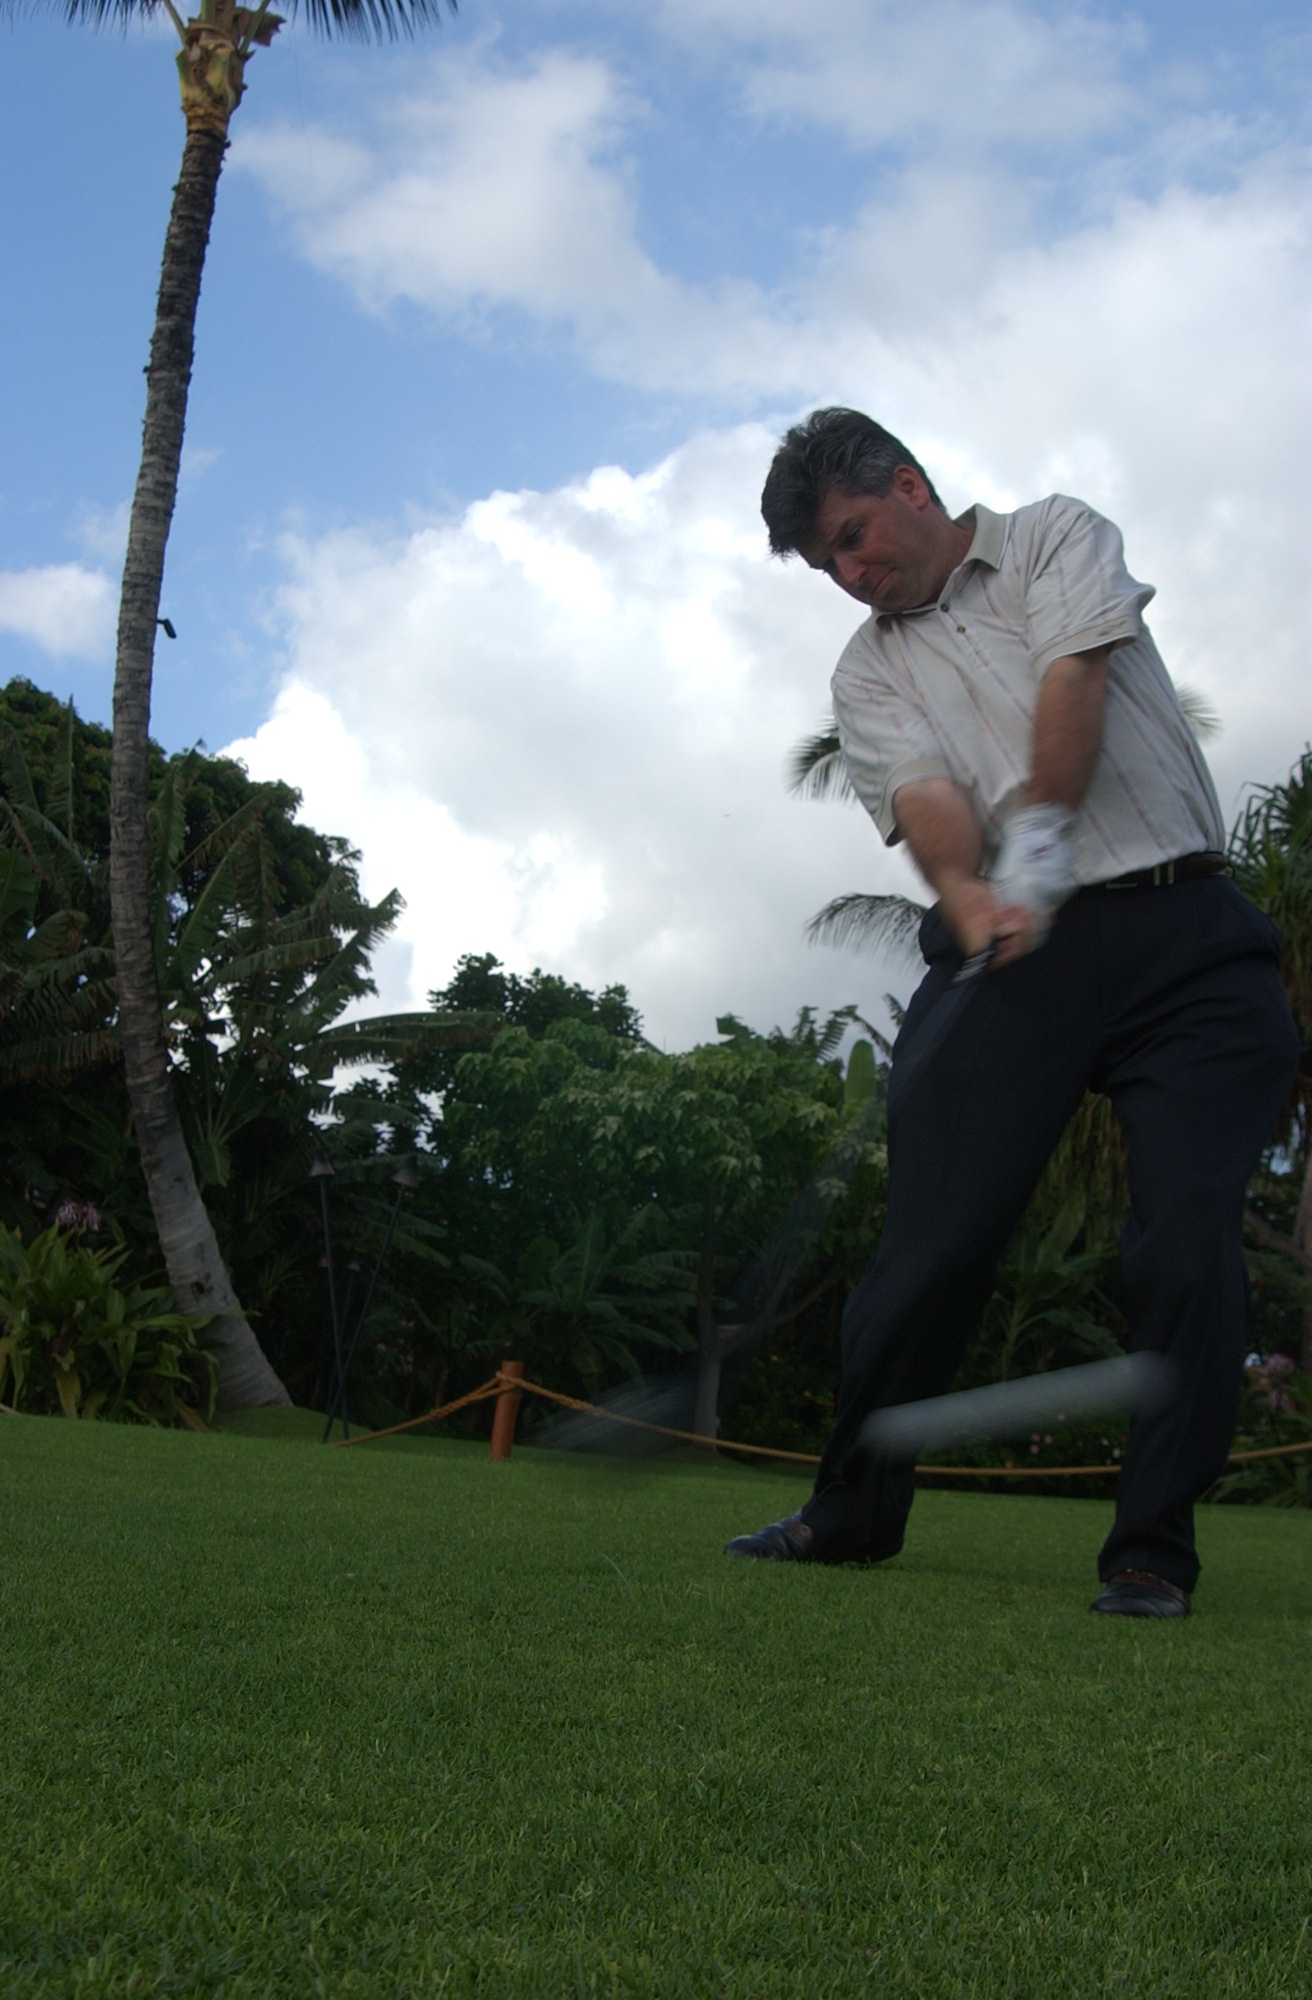 How to hit the ball